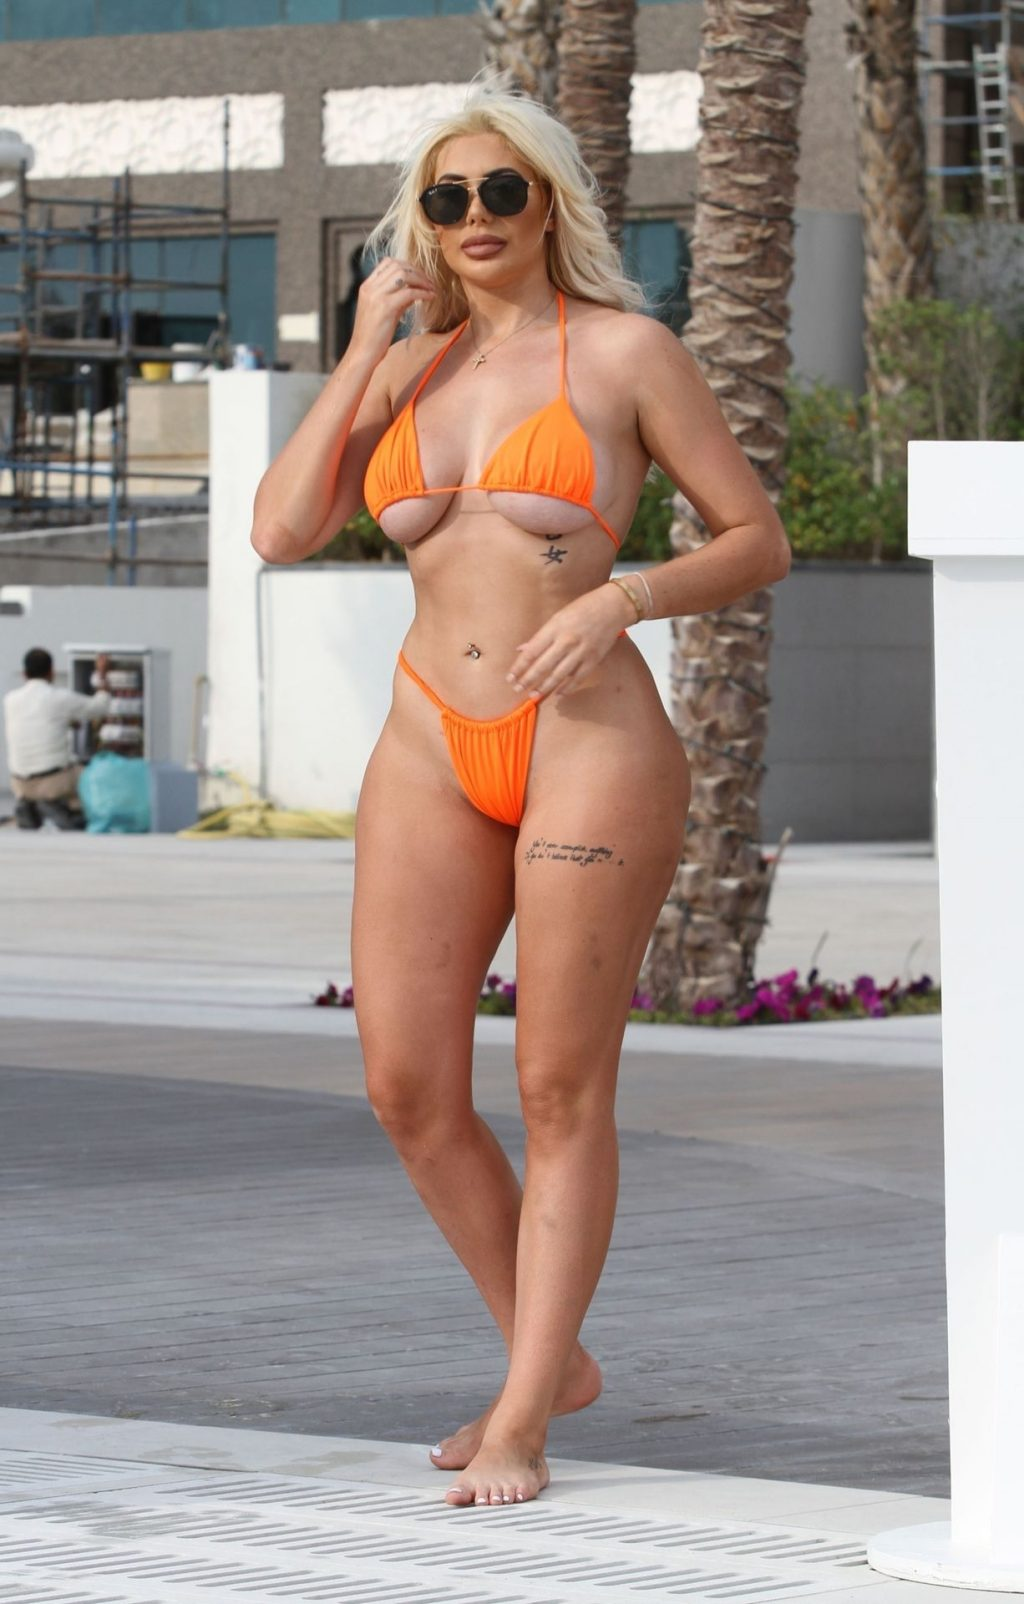 Chloe Ferry & Bethan Kershaw Sizzle in the Emirates Sunshine on Their Holiday Break in Dubai (40 Photos)